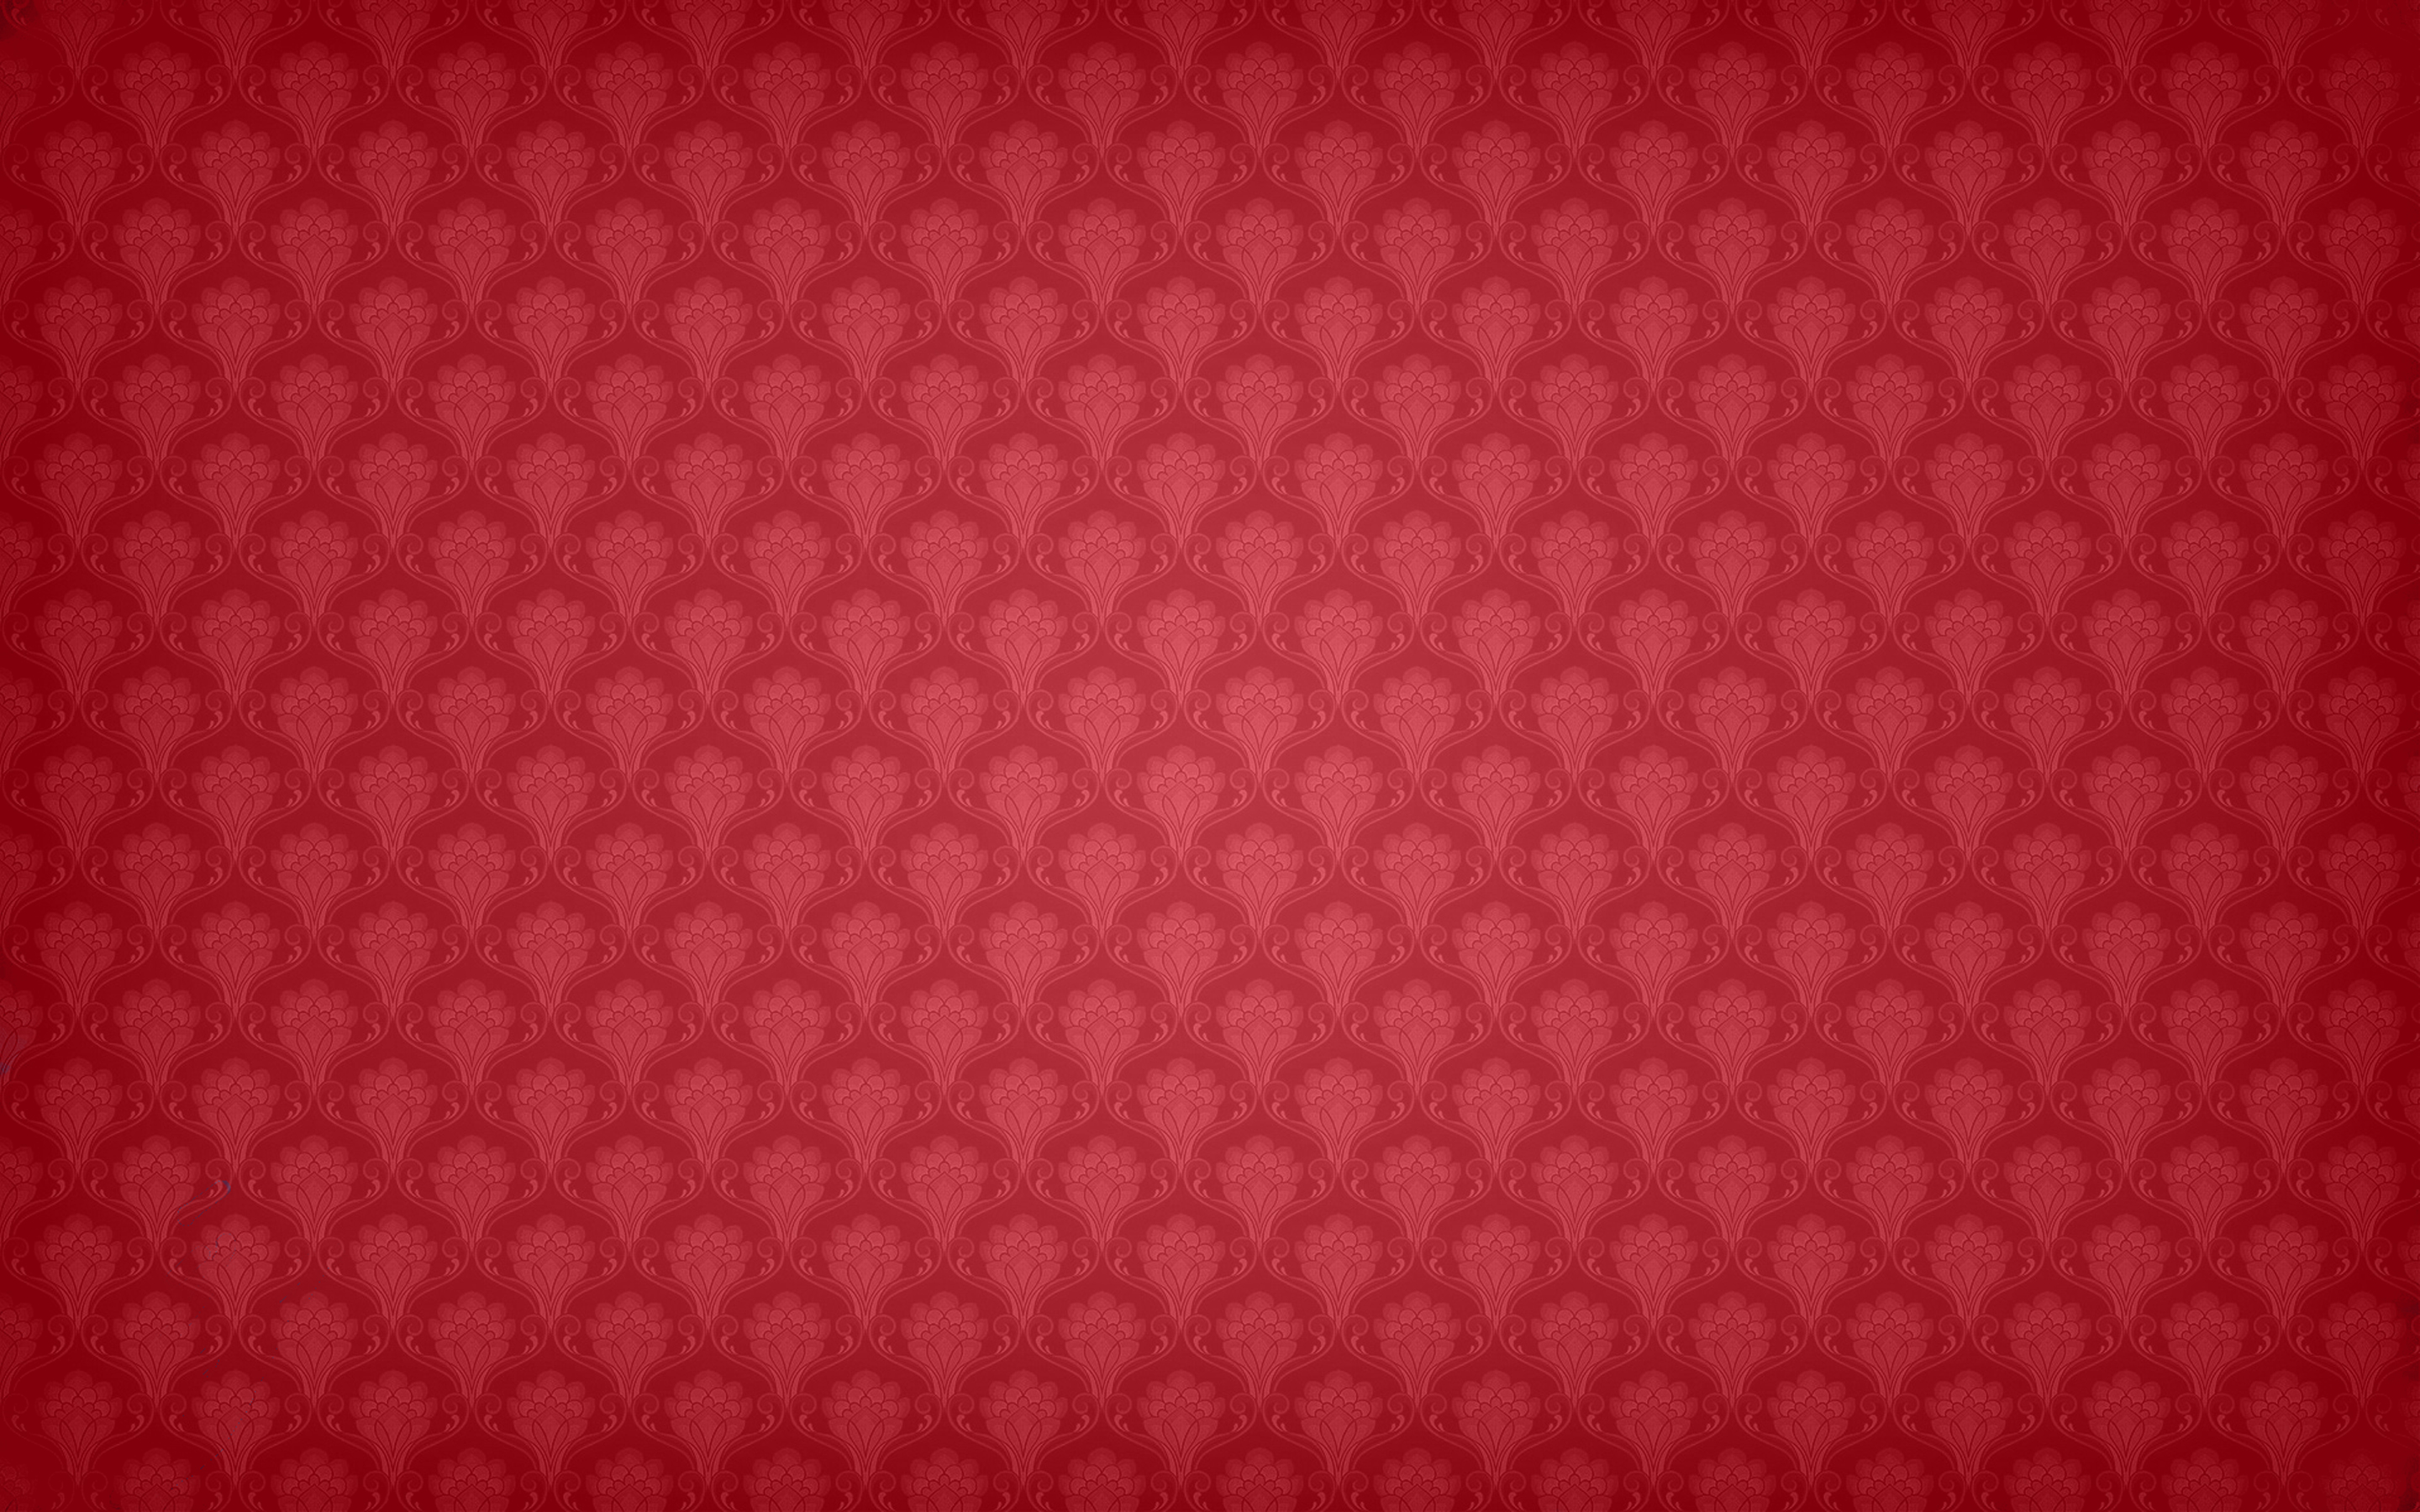 A nice collection of backgrounds paterns just take a look 2880x1800